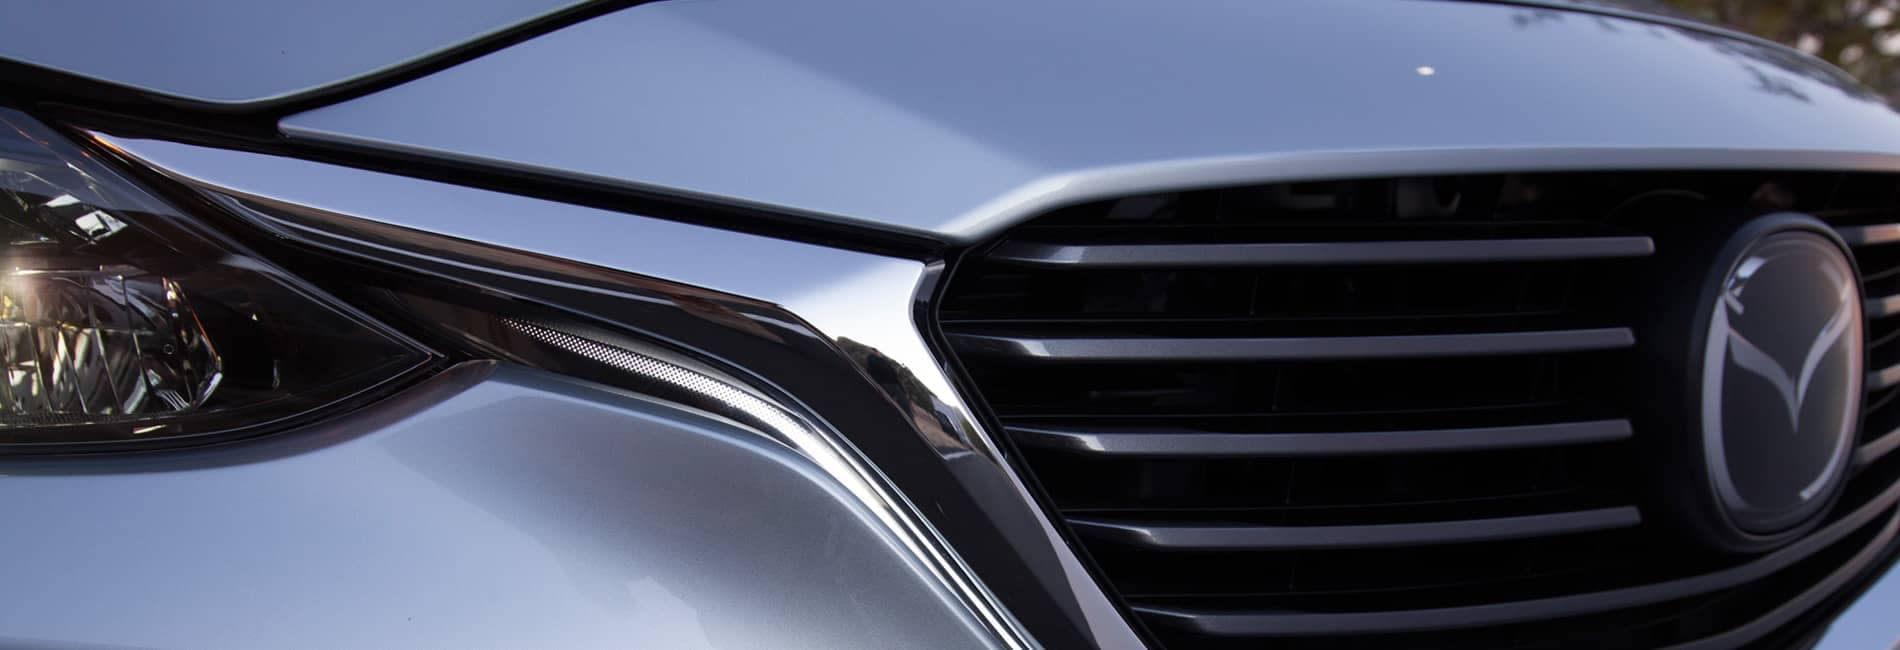 Mazda-Front-Grill-Banner